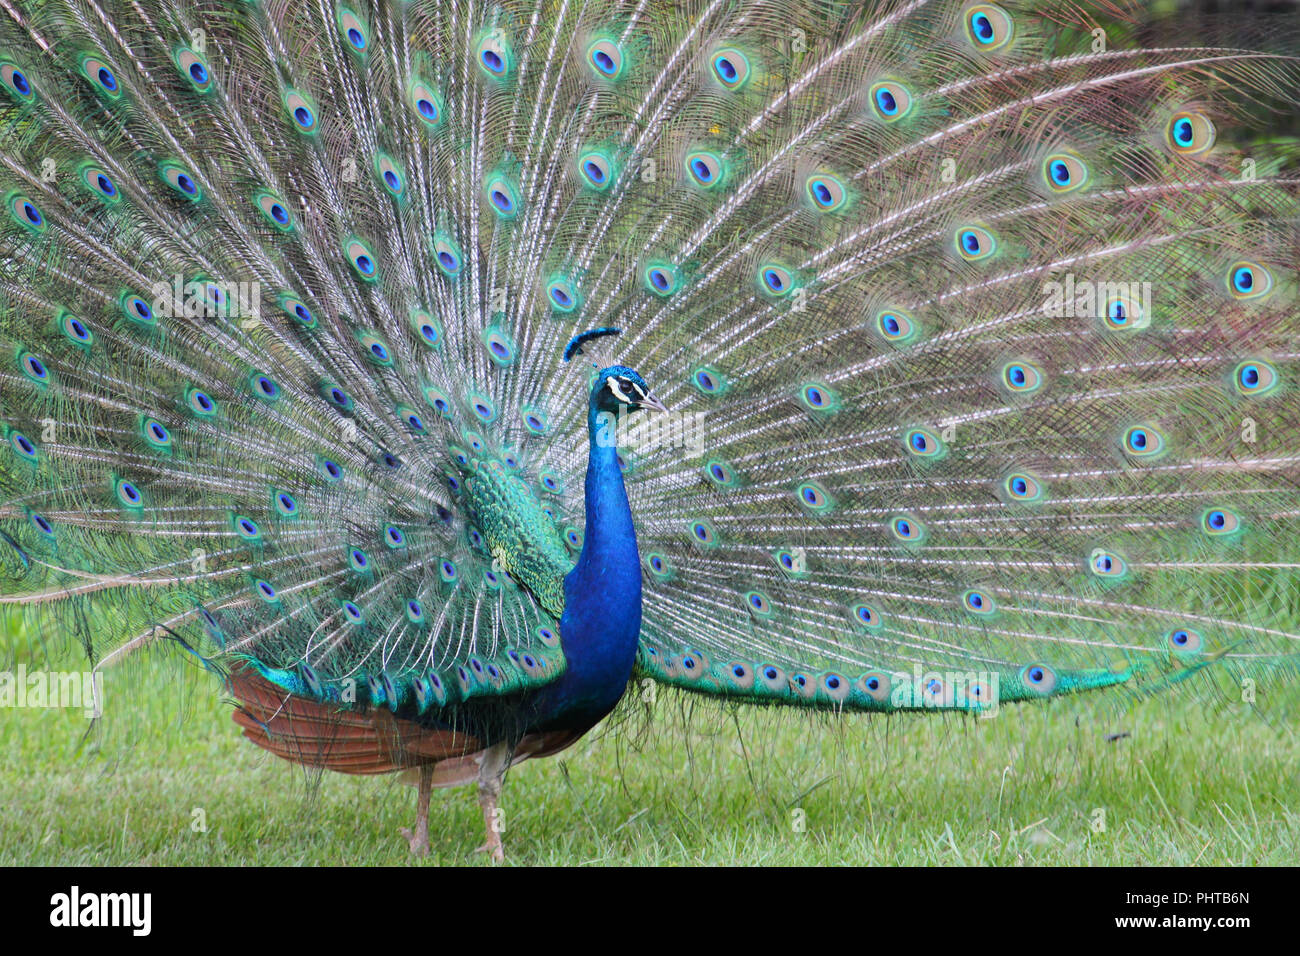 Mating display of a peacock. - Stock Image